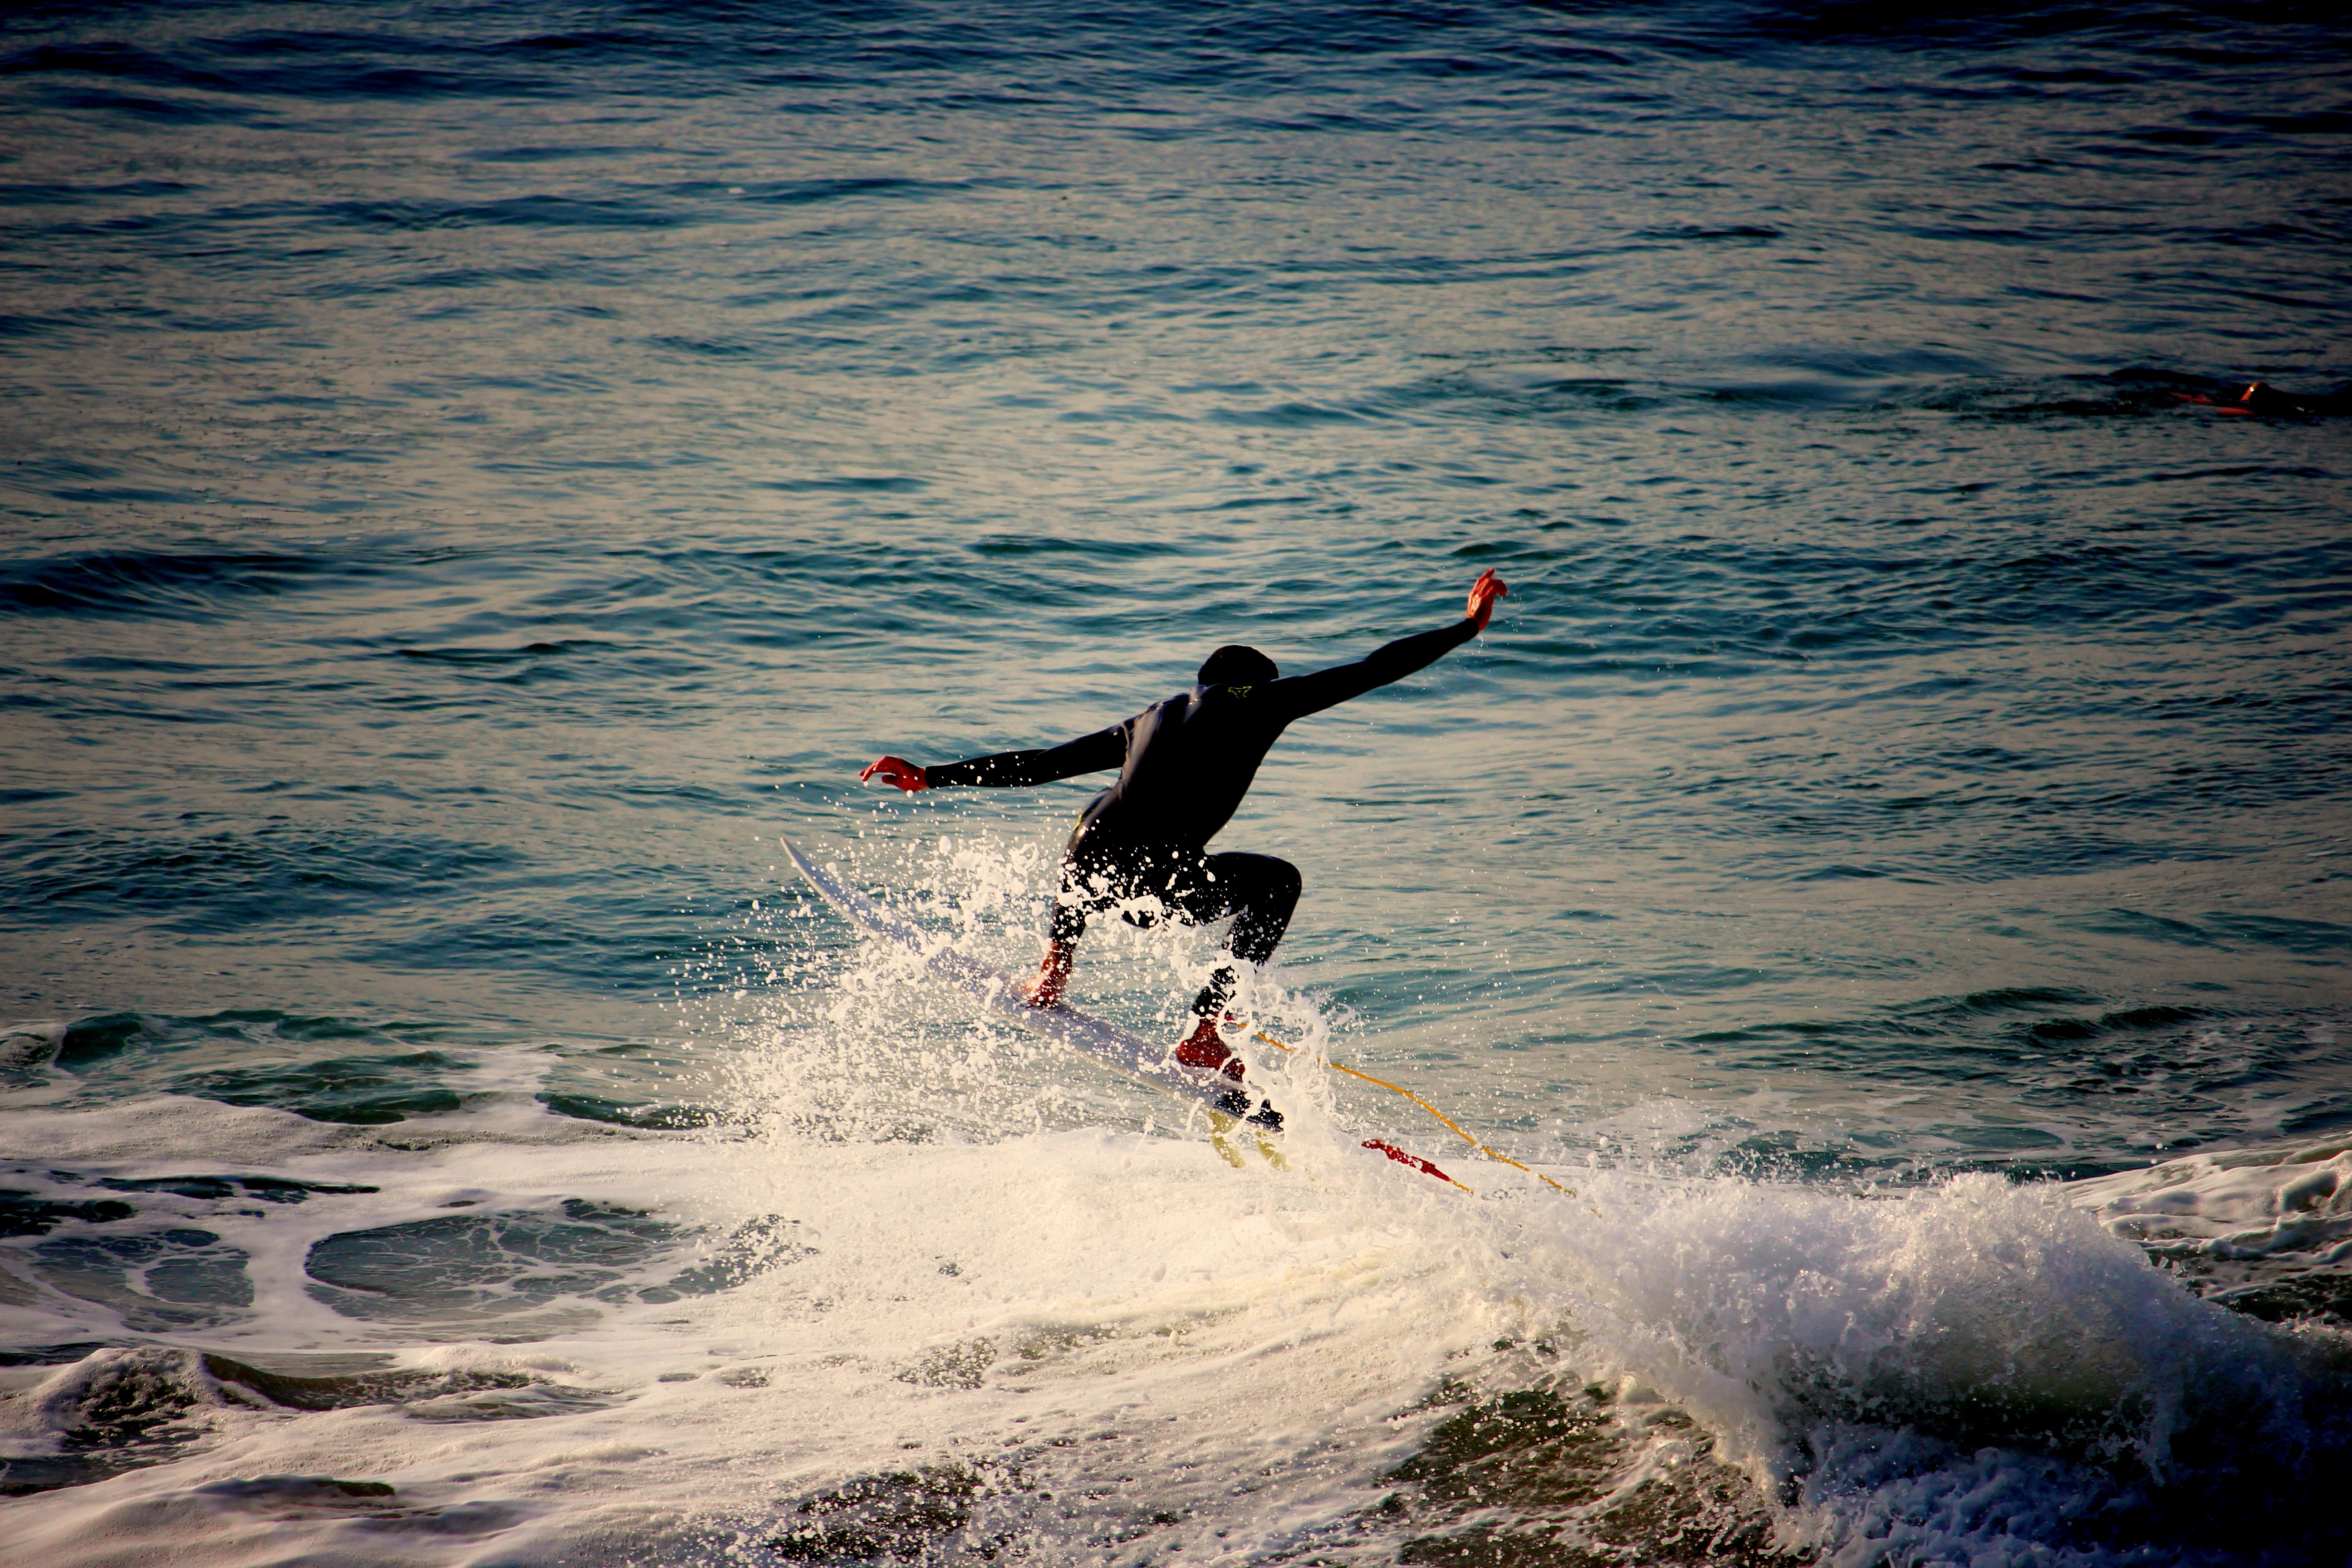 A surfer wearing a wetsuit, arms outstretched in the sea at Biarritz